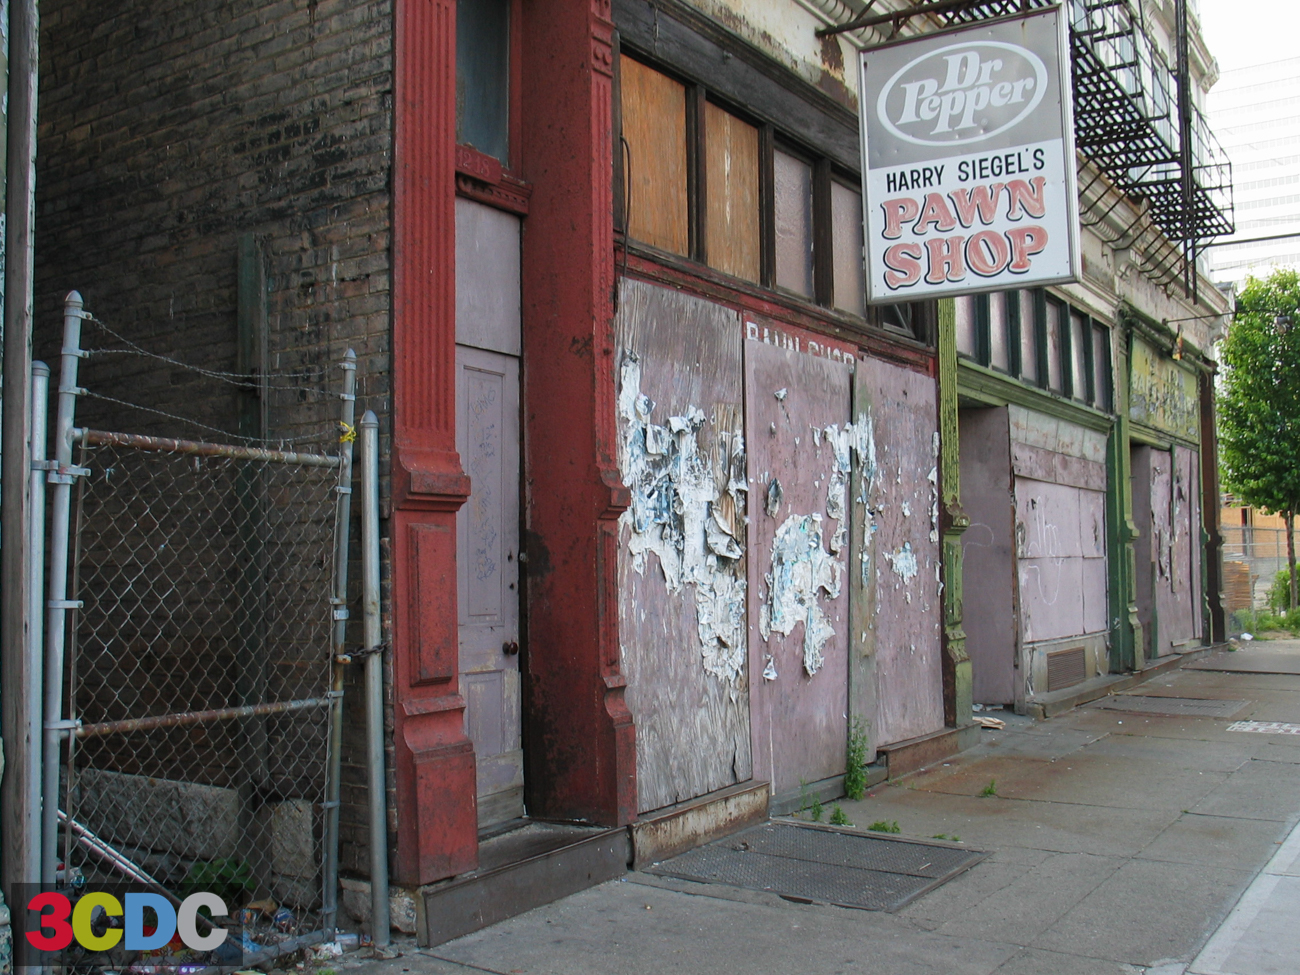 [BEFORE] LOCATION: Vine Street, looking south between 12th and 13th Streets (Over-the-Rhine) / IMAGE: Courtesy of 3CDC